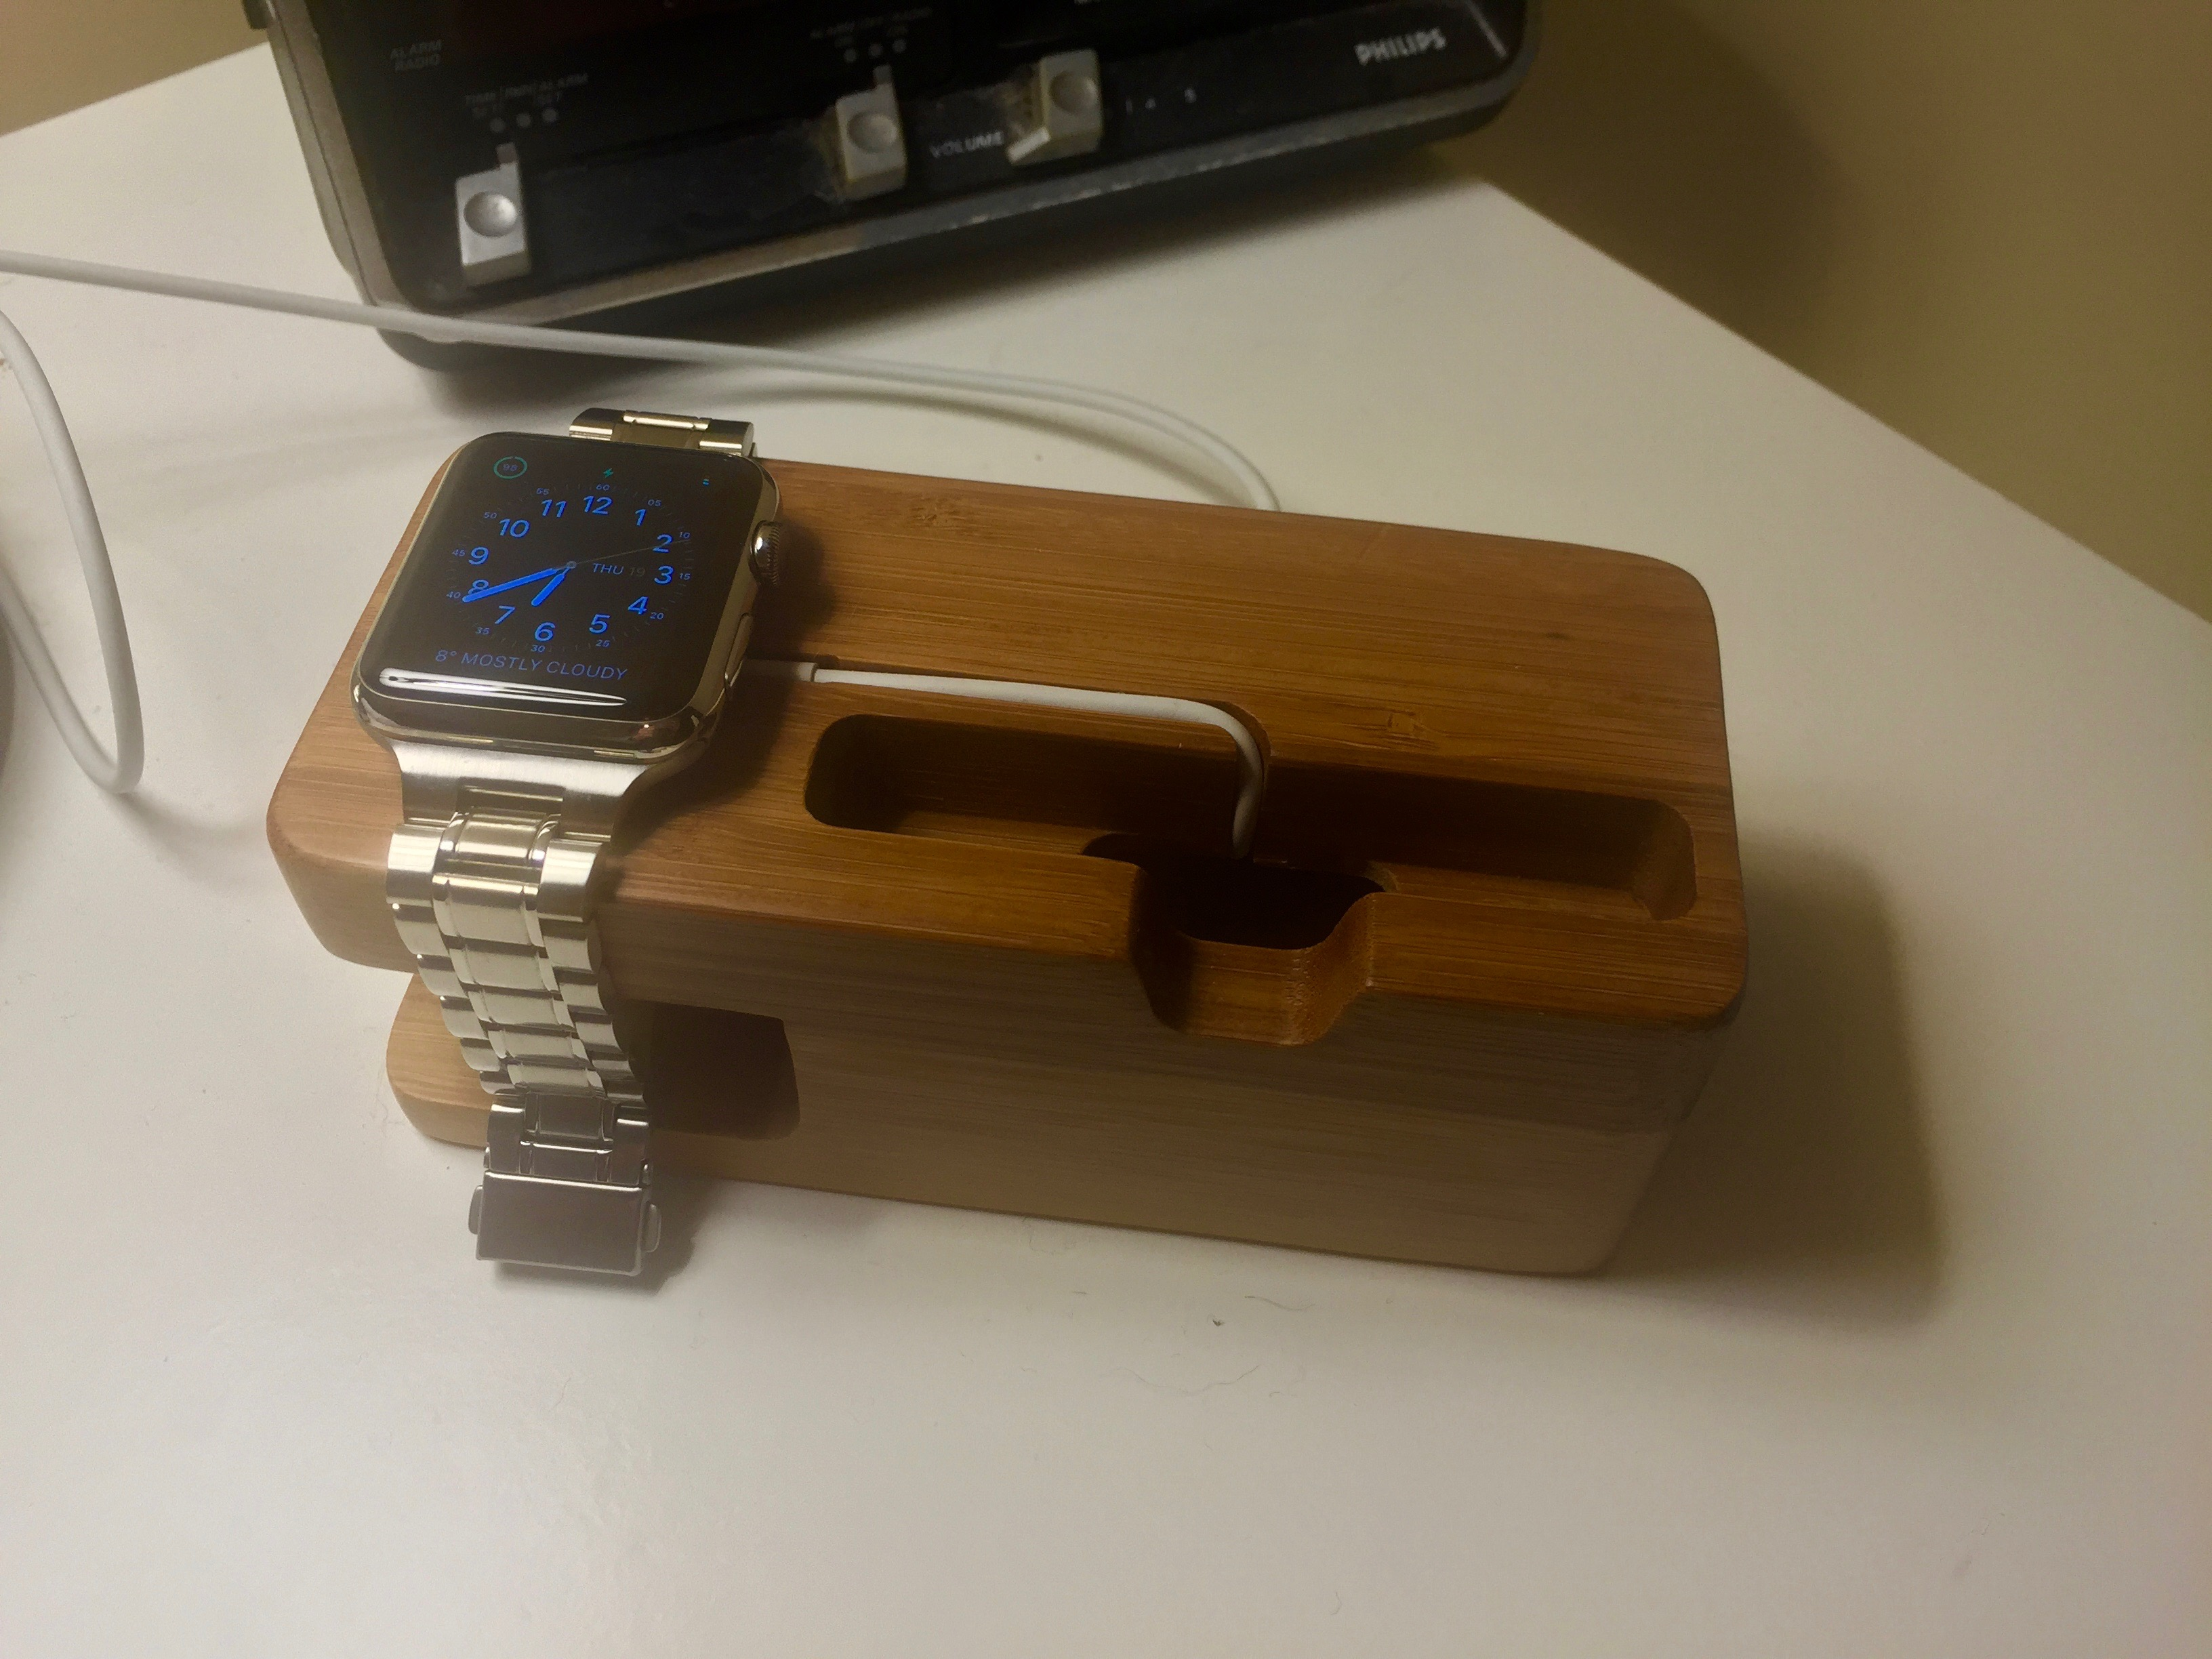 Review: Olixar offers a stylish, inexpensive bamboo Apple Watch dock